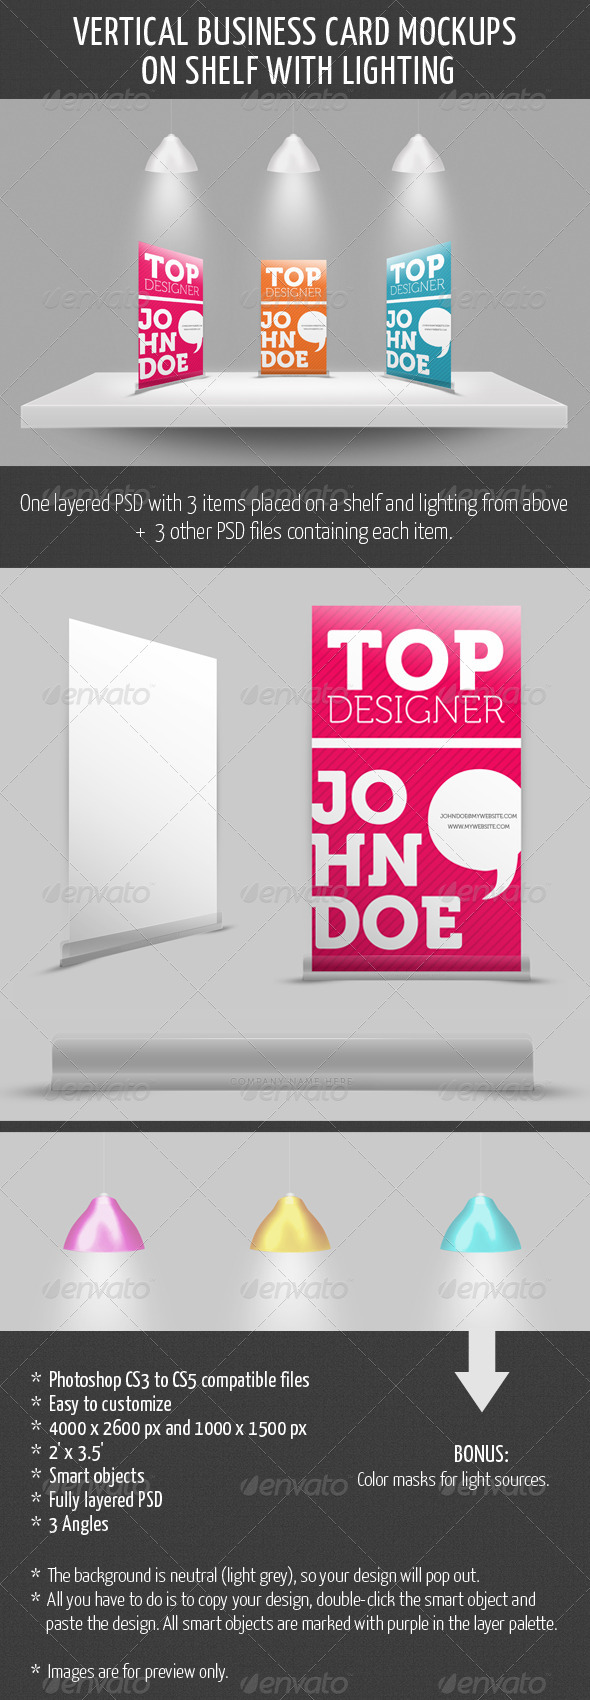 Vertical Business Card Mockup on Shelf - Business Cards Print